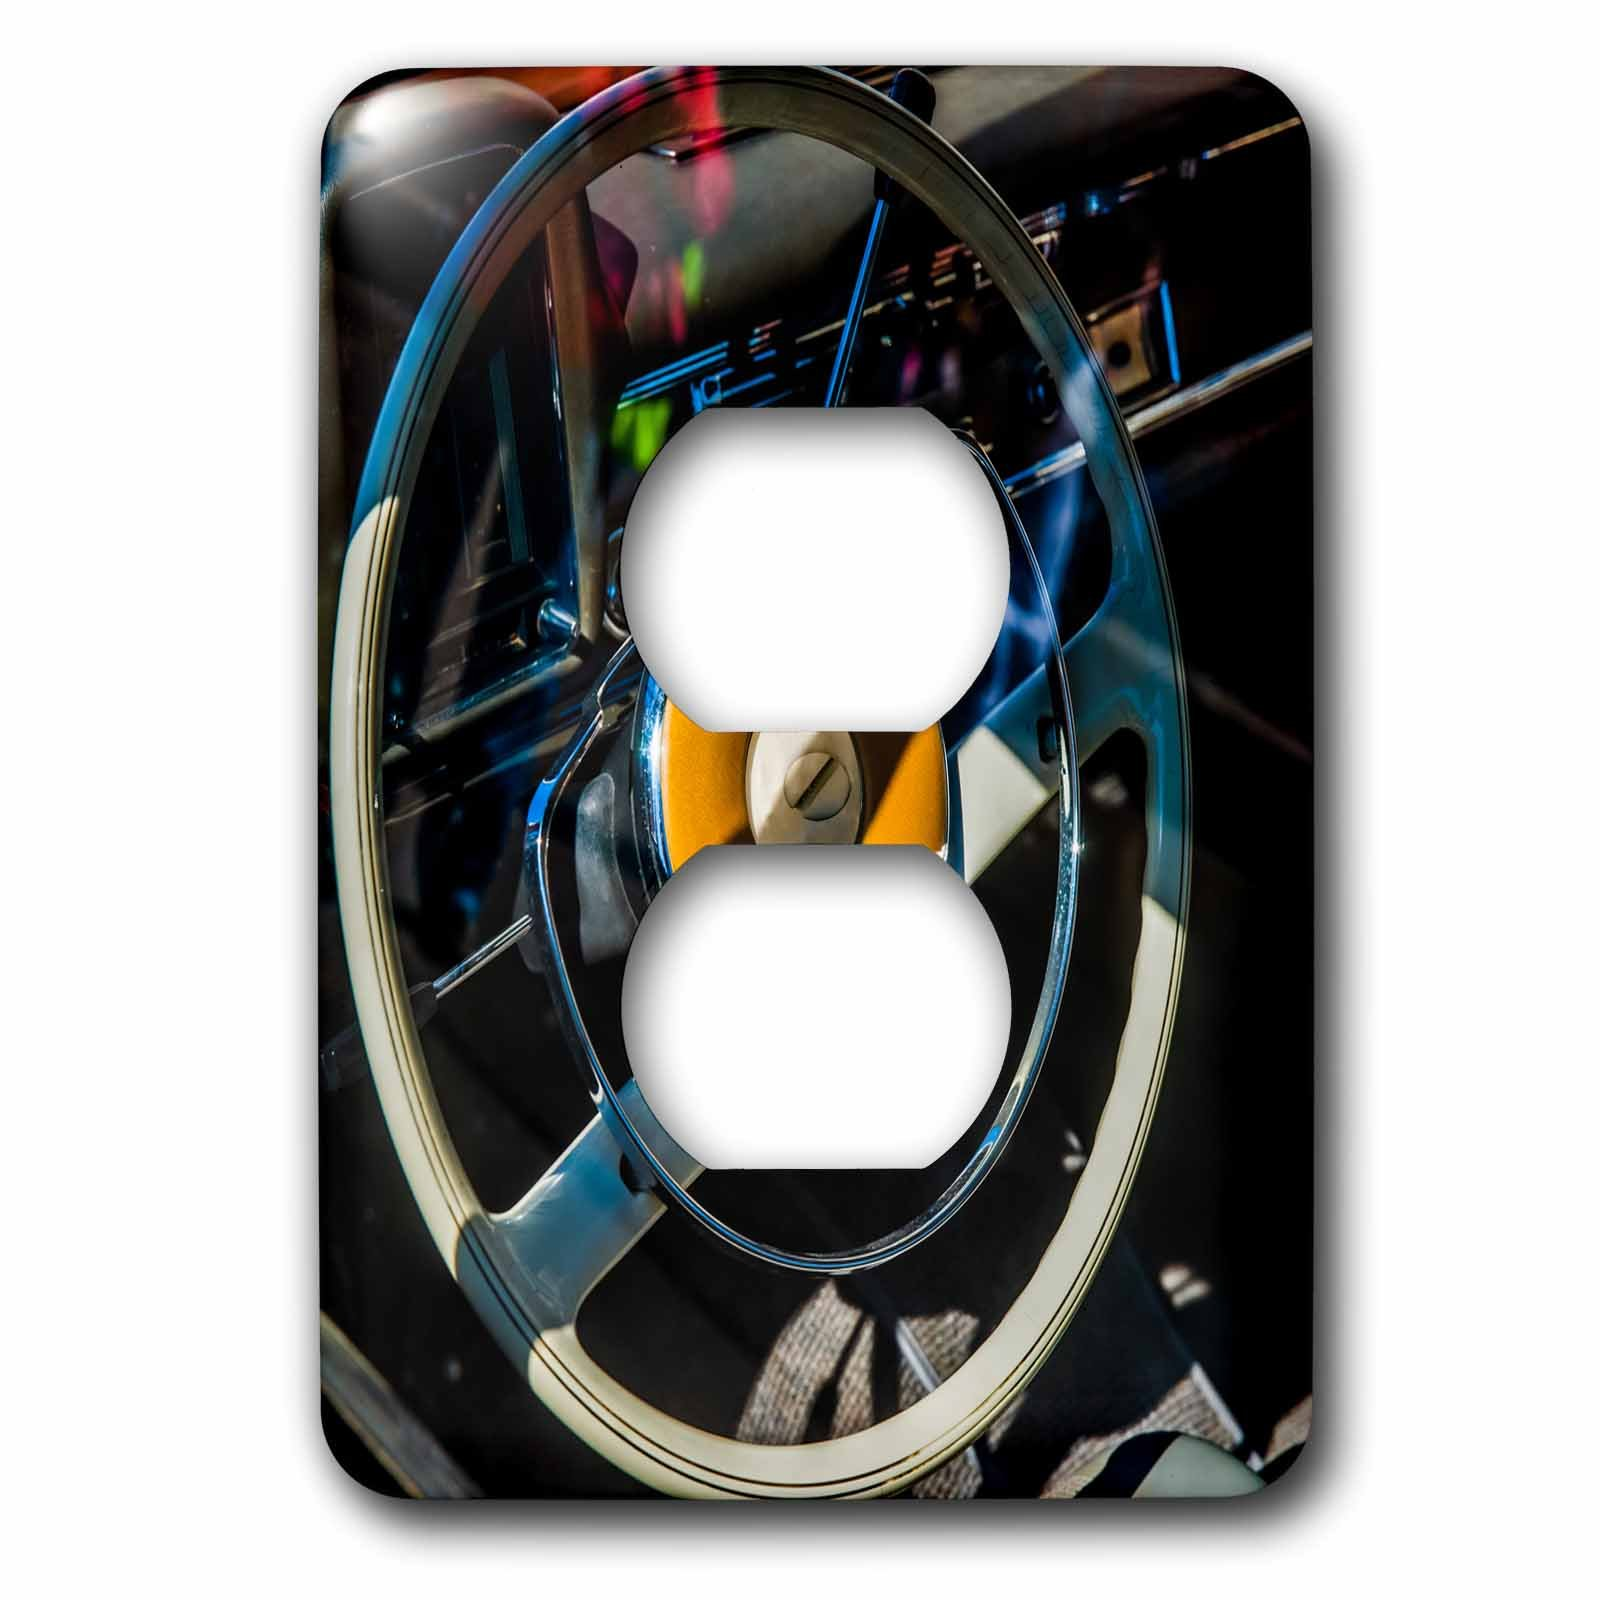 3dRose Alexis Photography - Transport Road - Steering wheel of a vintage luxury car - Light Switch Covers - 2 plug outlet cover (lsp_271910_6) by 3dRose (Image #1)